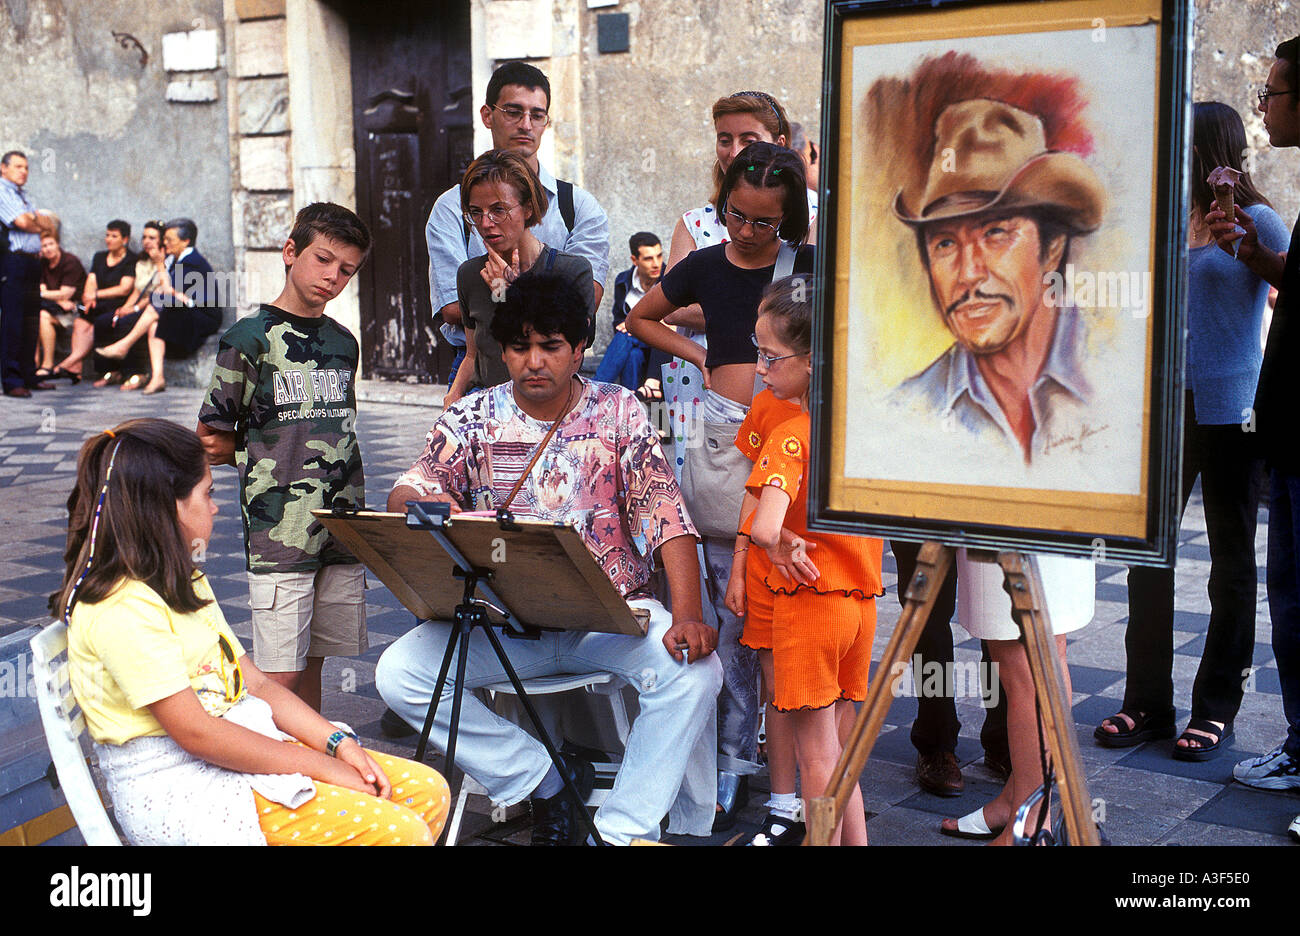 Street Artist painting passers-by in Taormina, Sicily, Italy - Stock Image